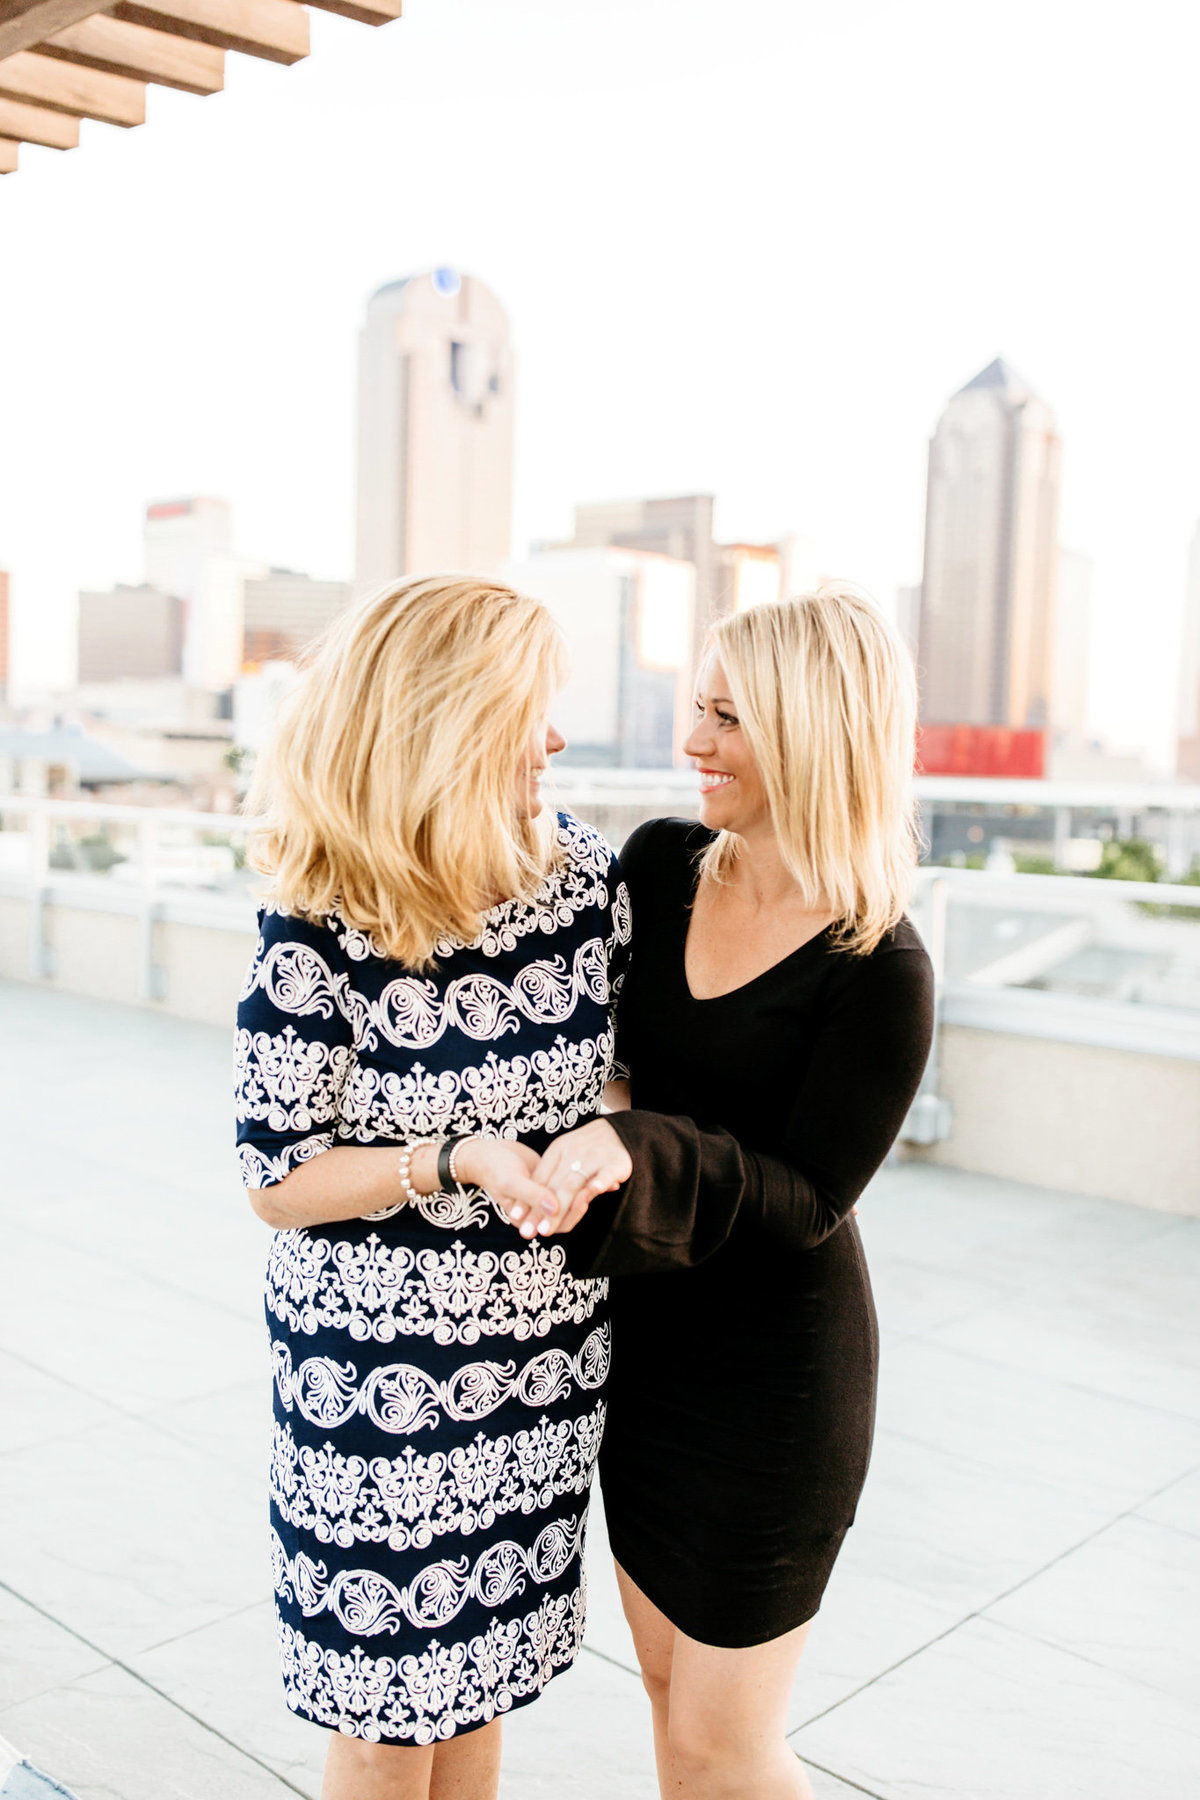 Eric & Megan - Downtown Dallas Rooftop Proposal & Engagement Session-161